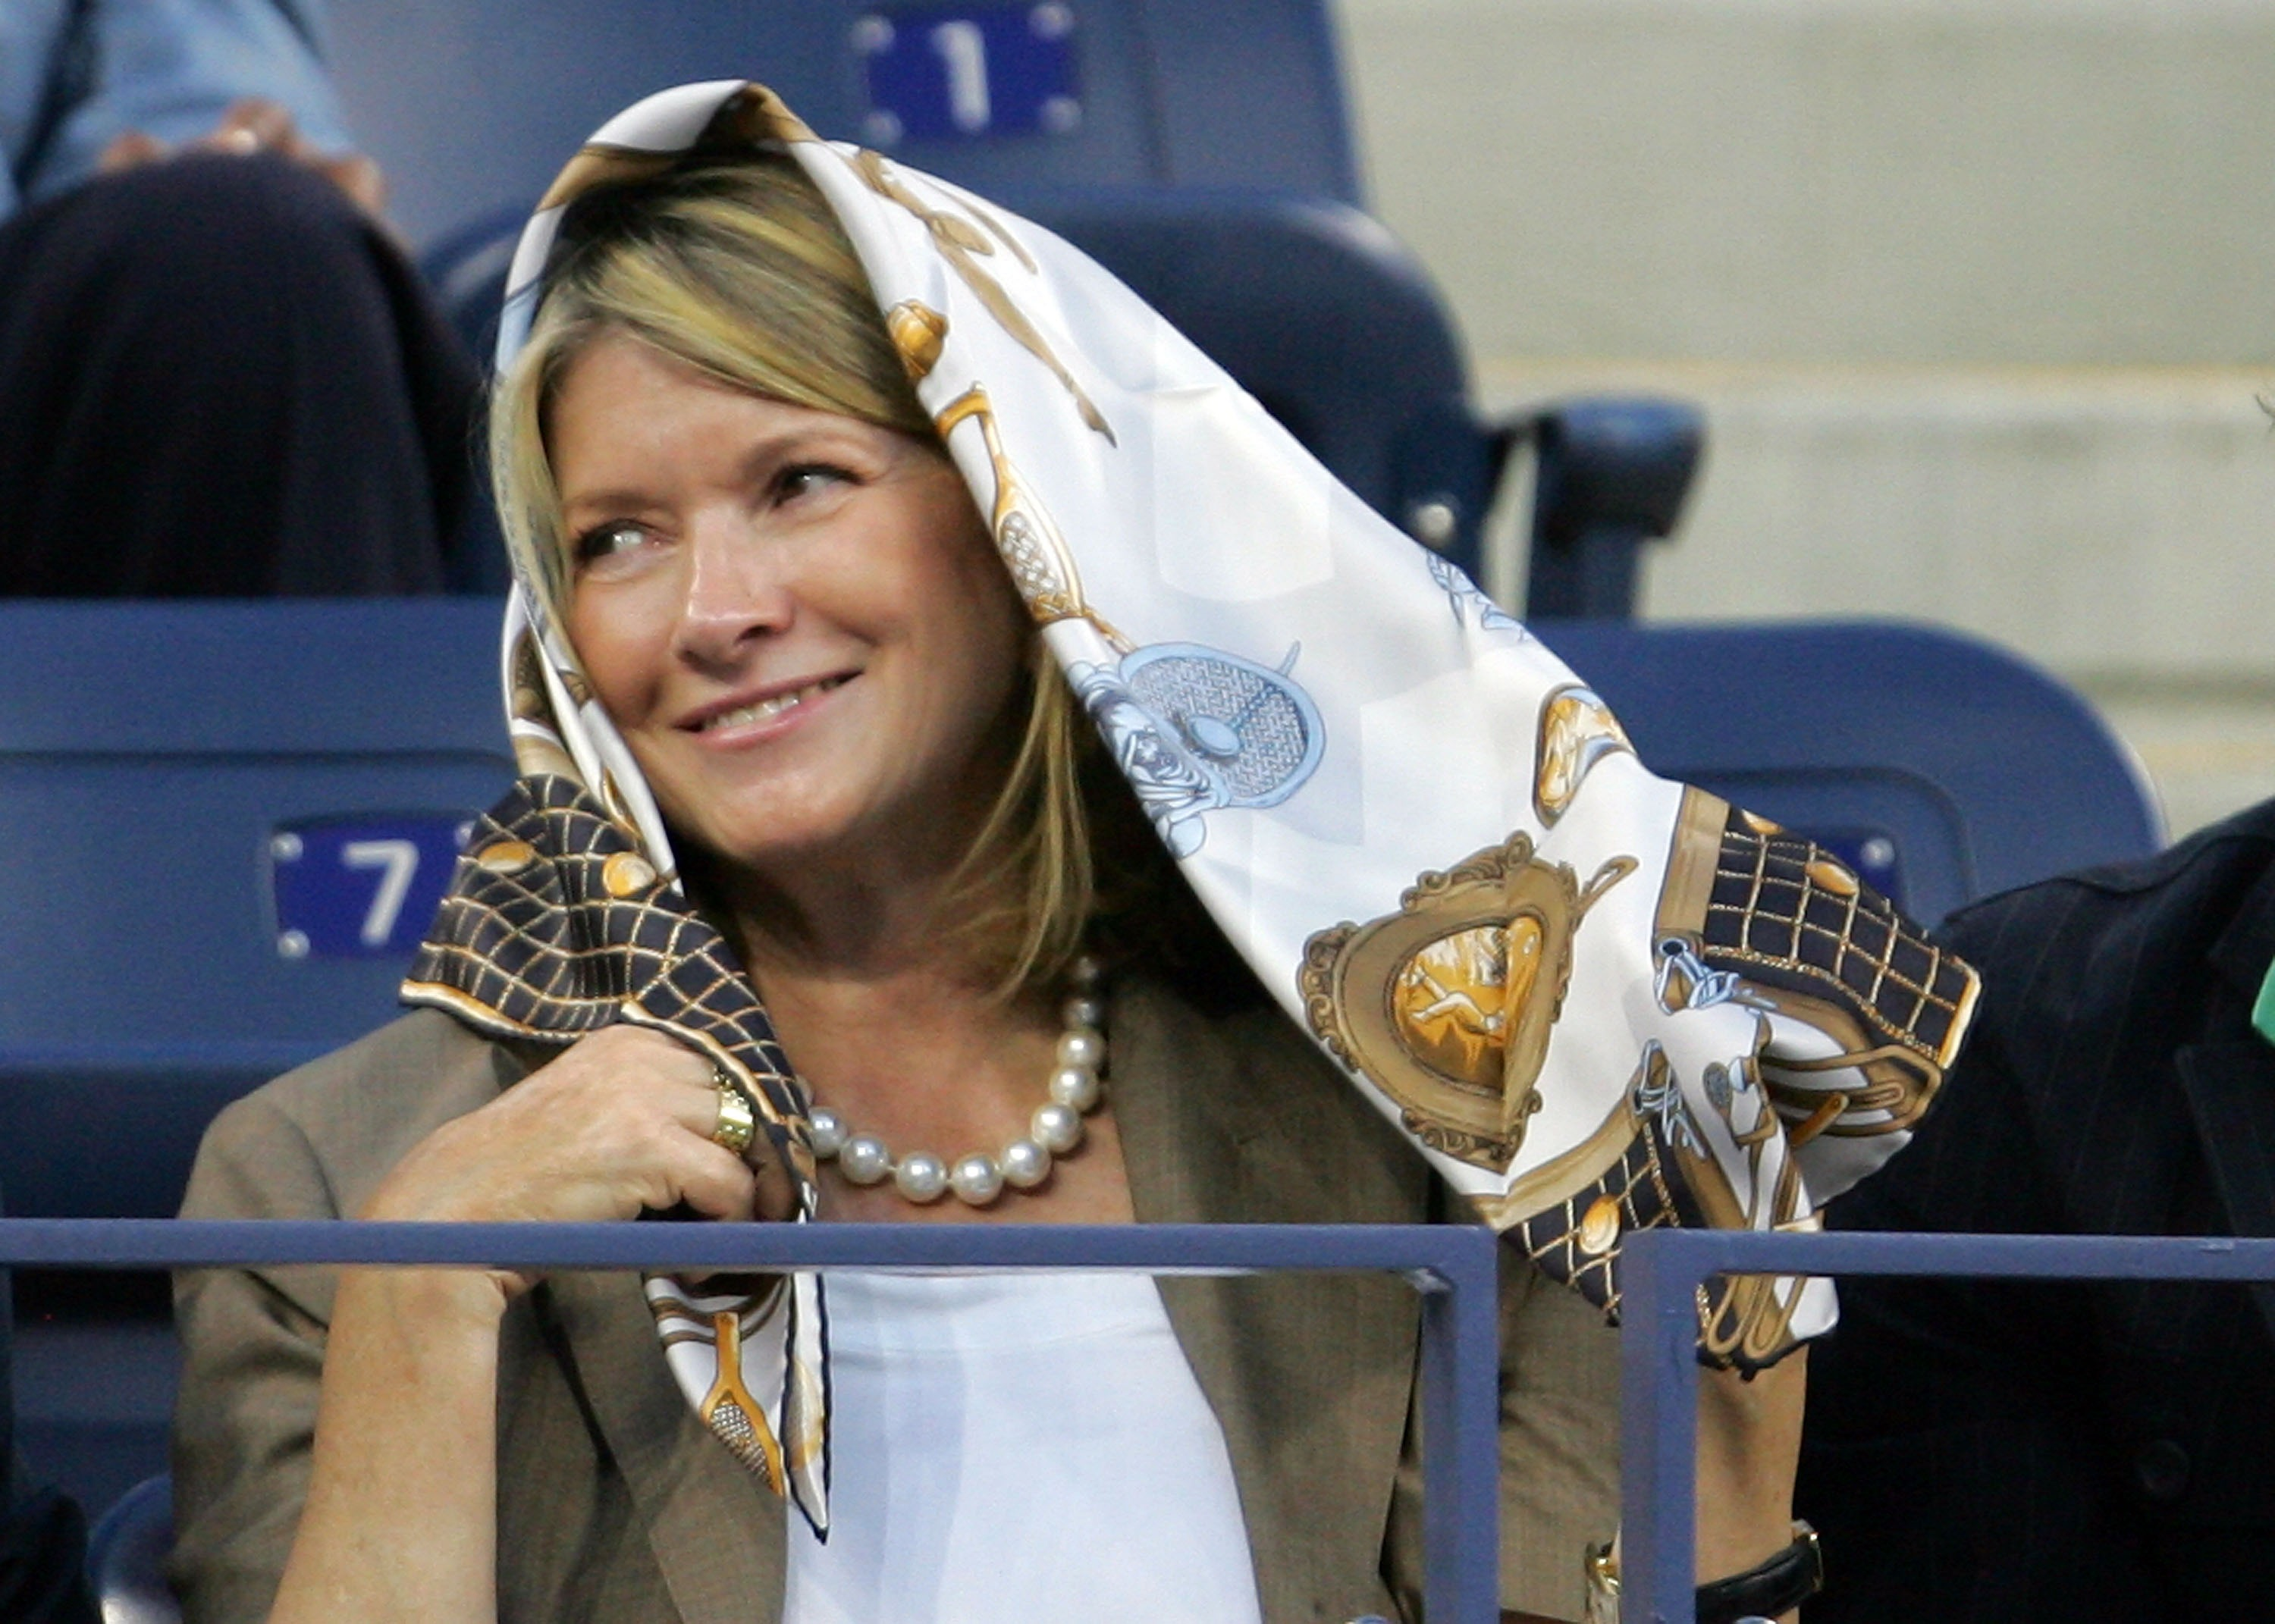 NEW YORK - AUGUST 27:  Martha Stewart looks on during the opening ceremonies for the U.S. Open at the Billie Jean King National Tennis Center on August 27, 2007 in the Flushing neighborhood of the Queens borough of New York City.  (Photo by Matthew Stockm